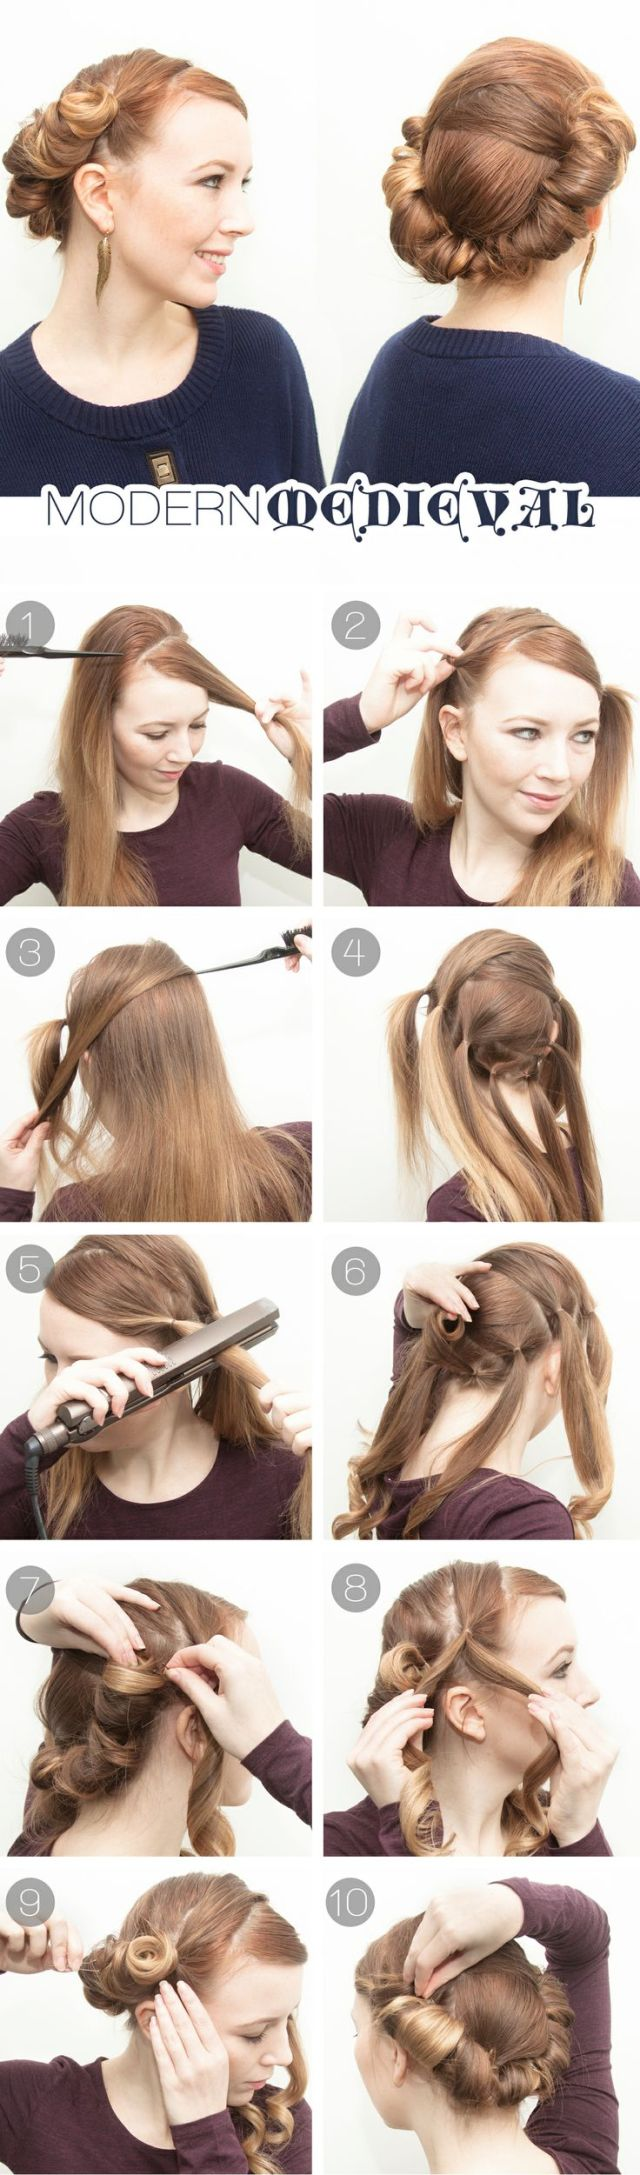 9 genius hairstyles you can do with a flat iron – sheknows